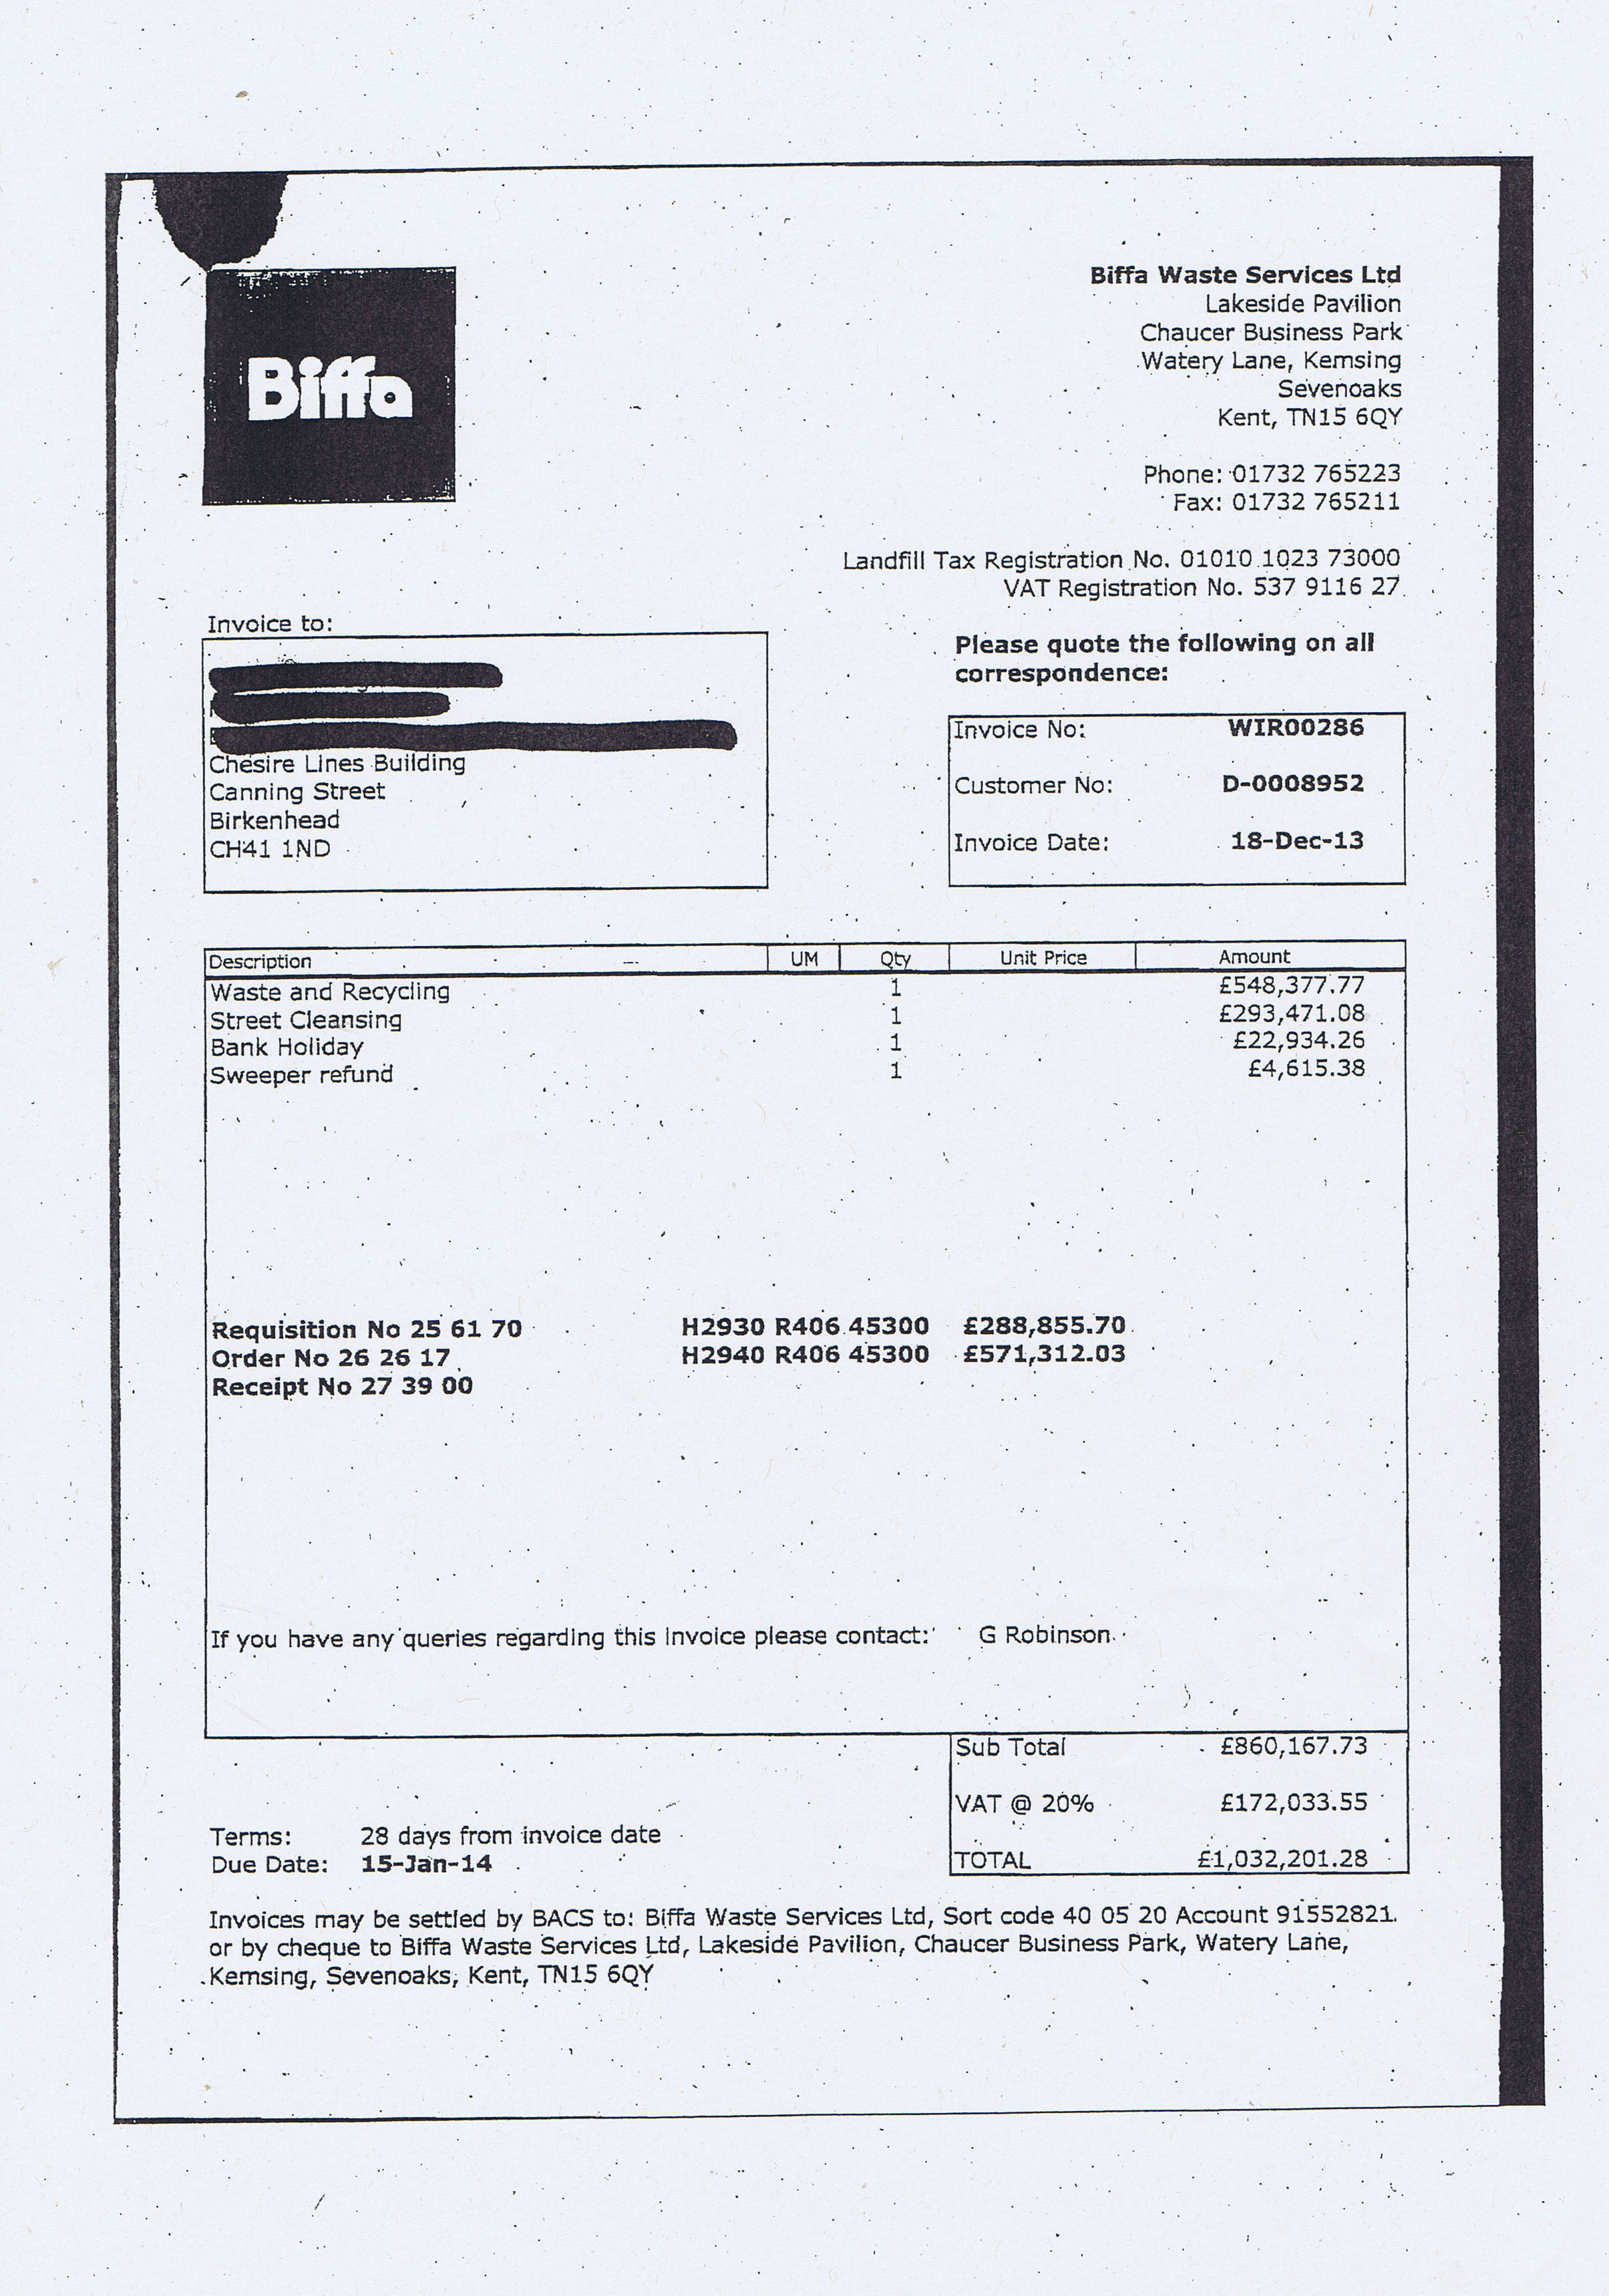 biffa asks wirral s cabinet for a year extension to bins biffa waste service limited 2013 invoice wirral council pound1032201 28